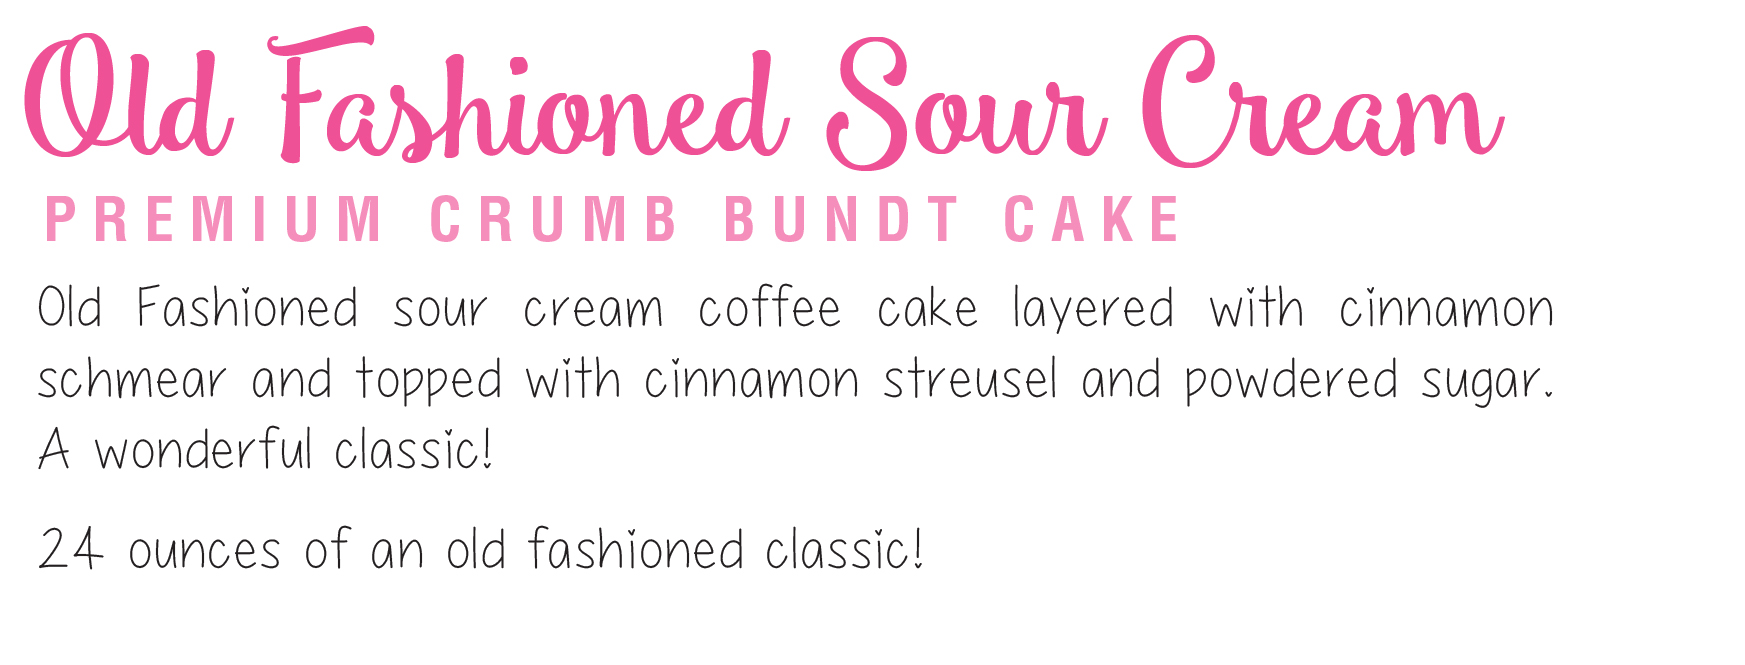 MWC - Old Fashioned Crumb Bundt.jpg